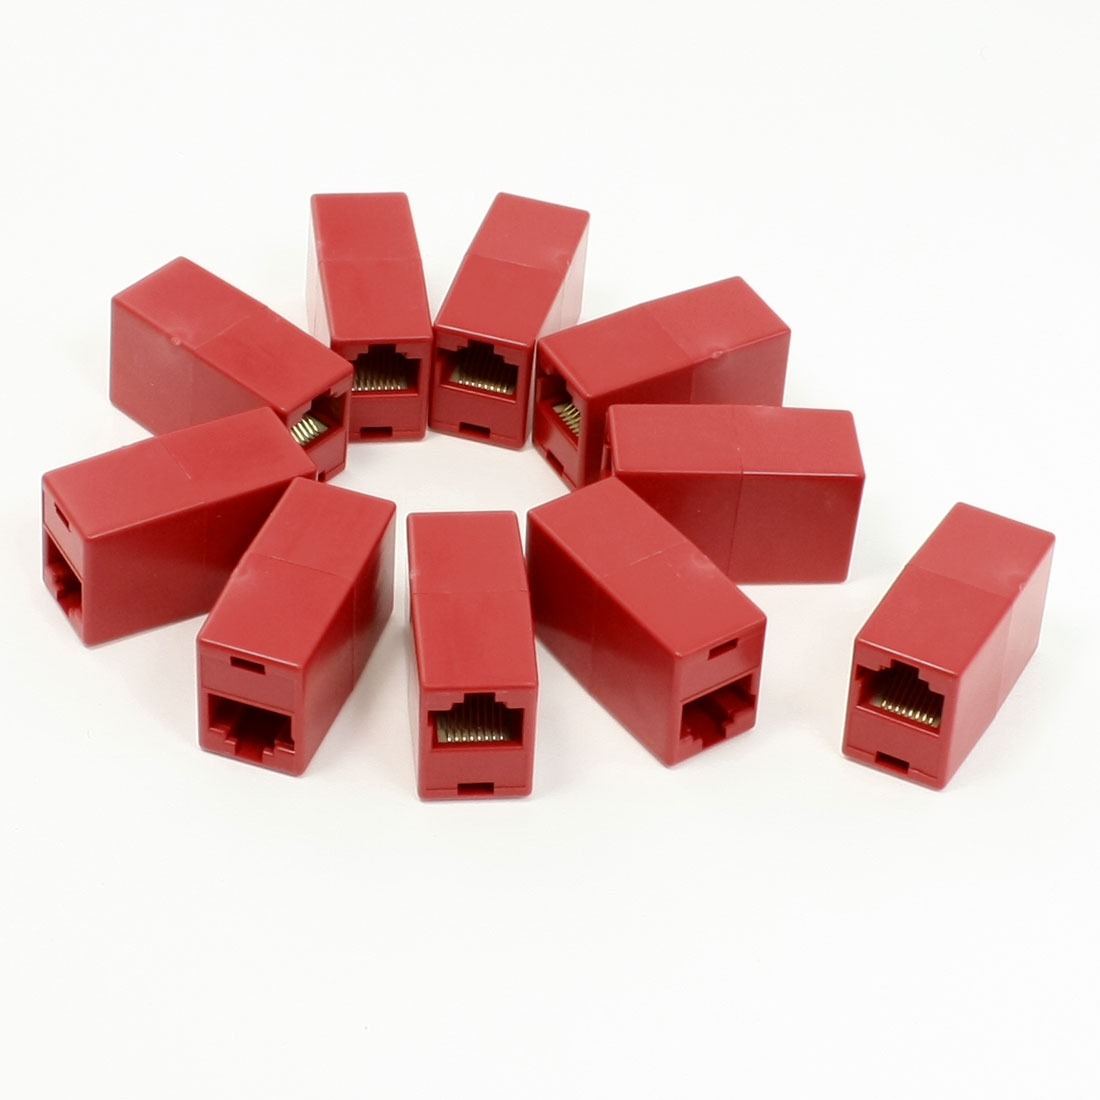 Red Double Connector RJ45 F/F Modular Network Inline Coupler Adapter 10 Pcs